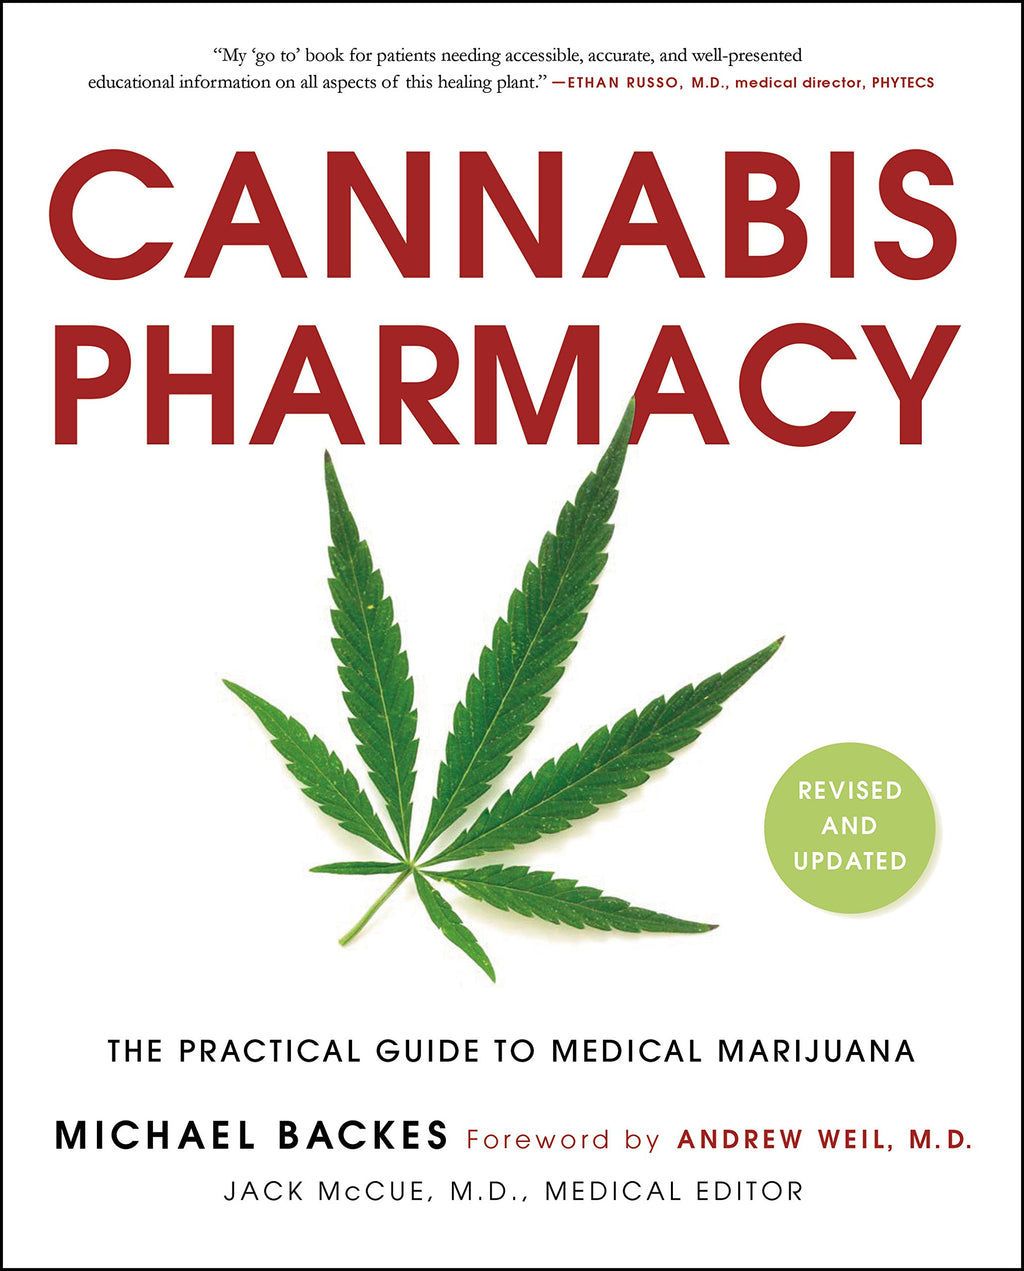 Cannabis Pharmacy by Michael Backes